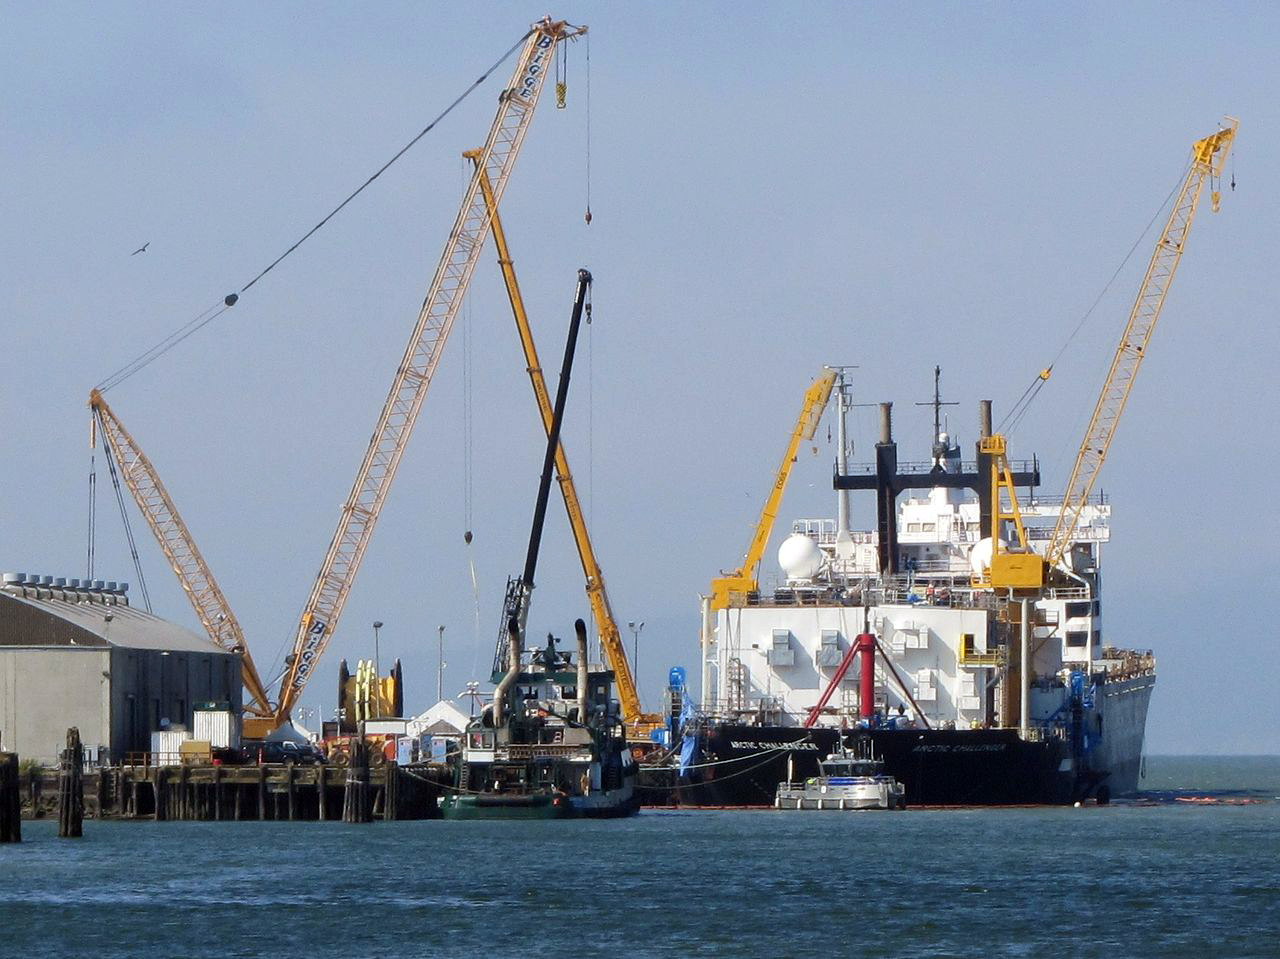 Bellingham oil rig project under federal scrutiny for storm safety shell oils arctic challenger oil spill response rig is under construction at the bellingham shipping sciox Choice Image